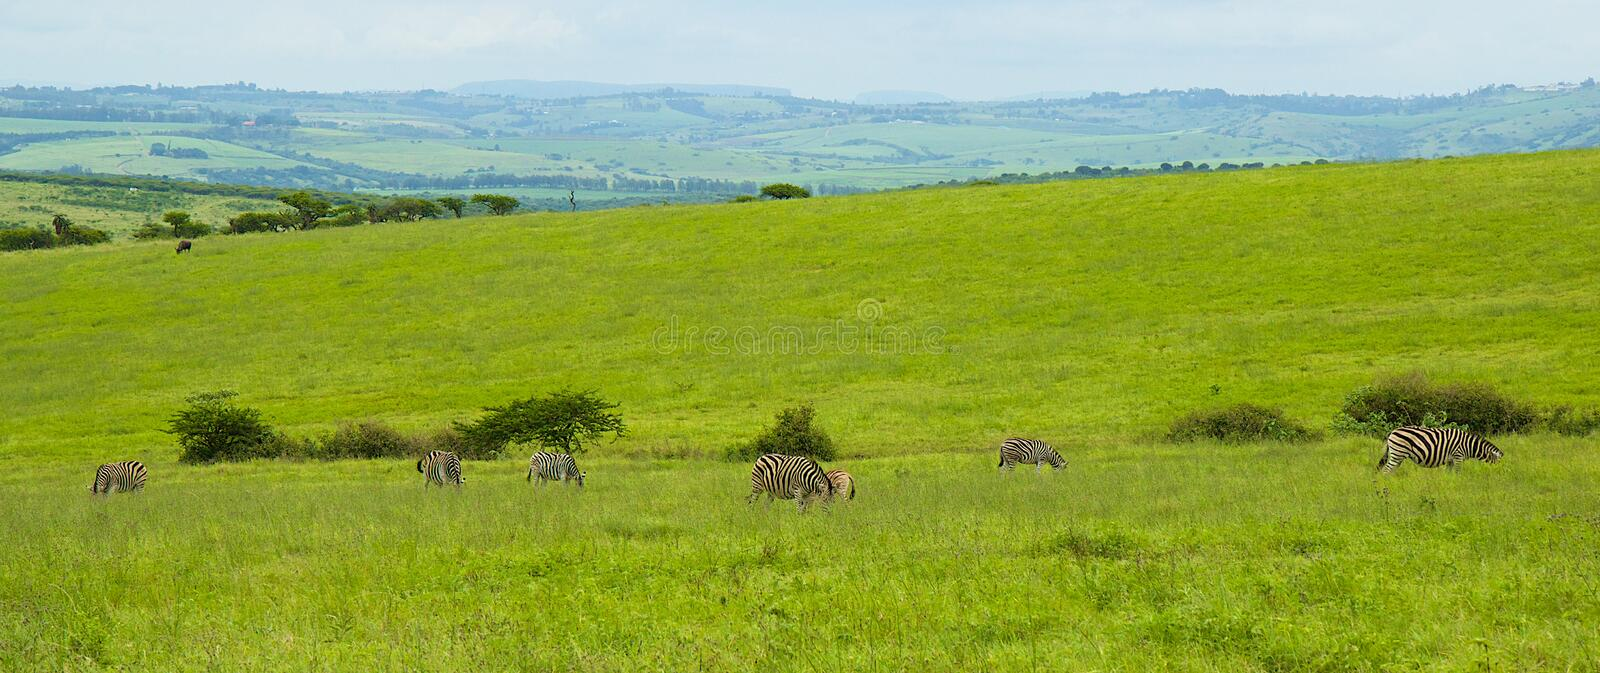 Panorama with Zebras, South Africa royalty free stock photos